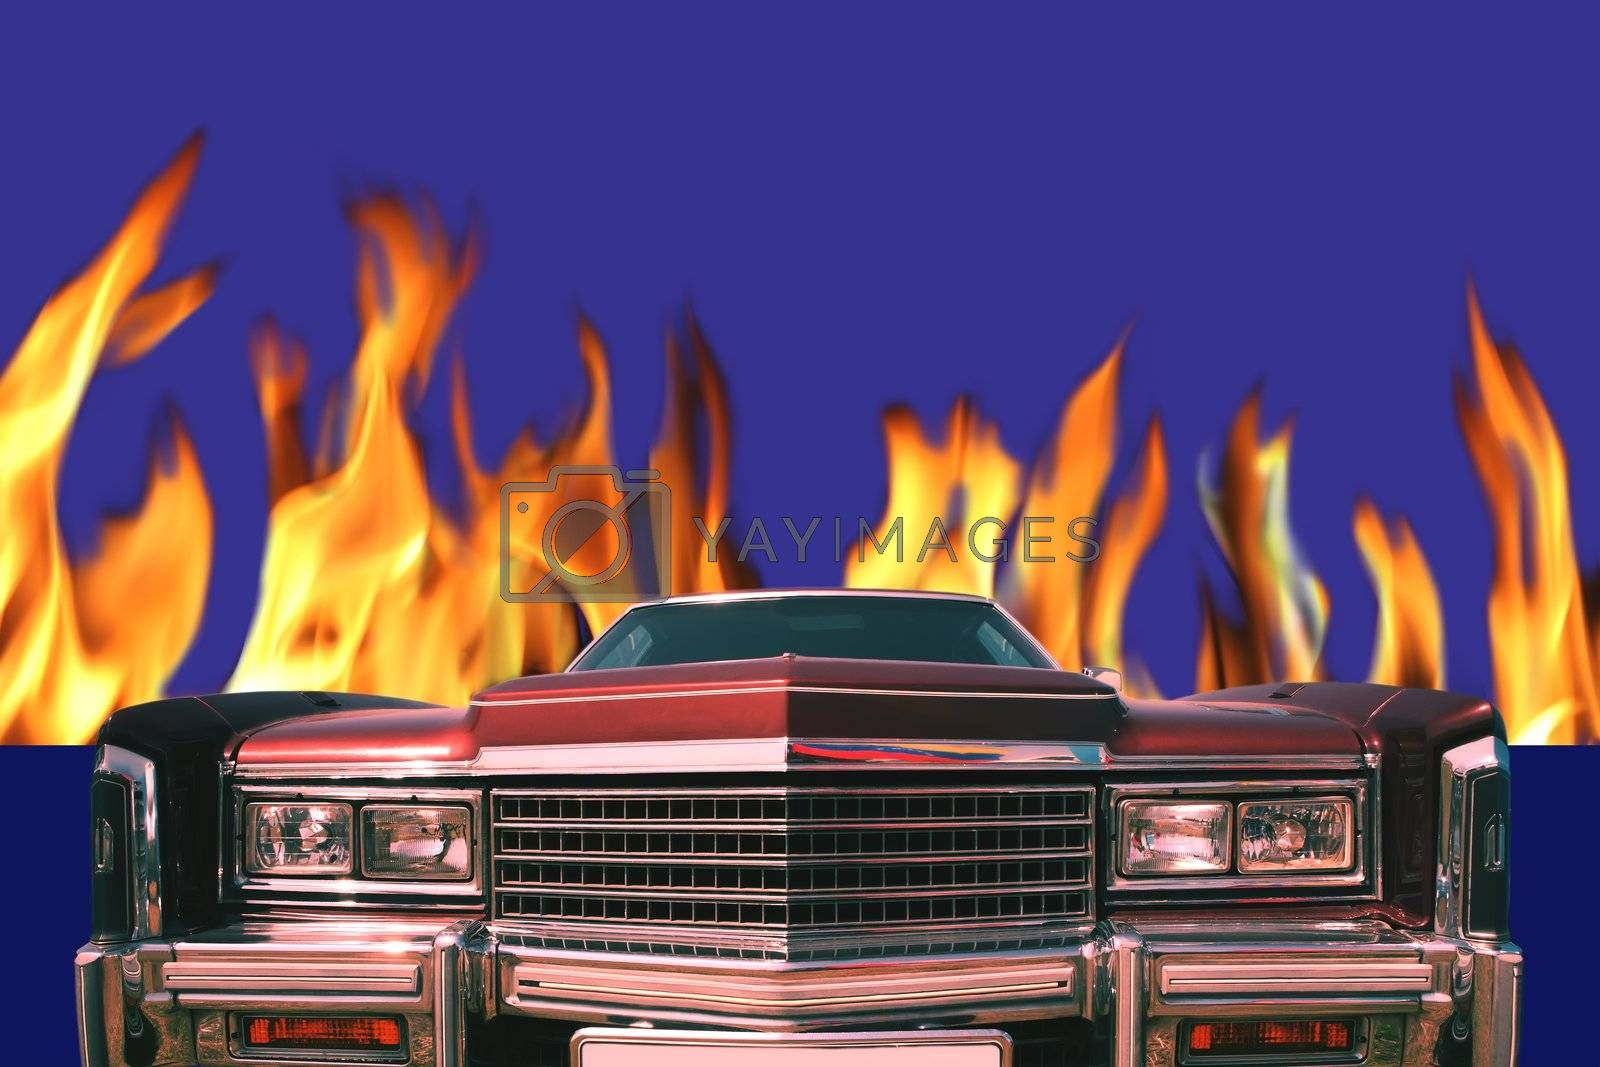 Red Car aflame by Astroid